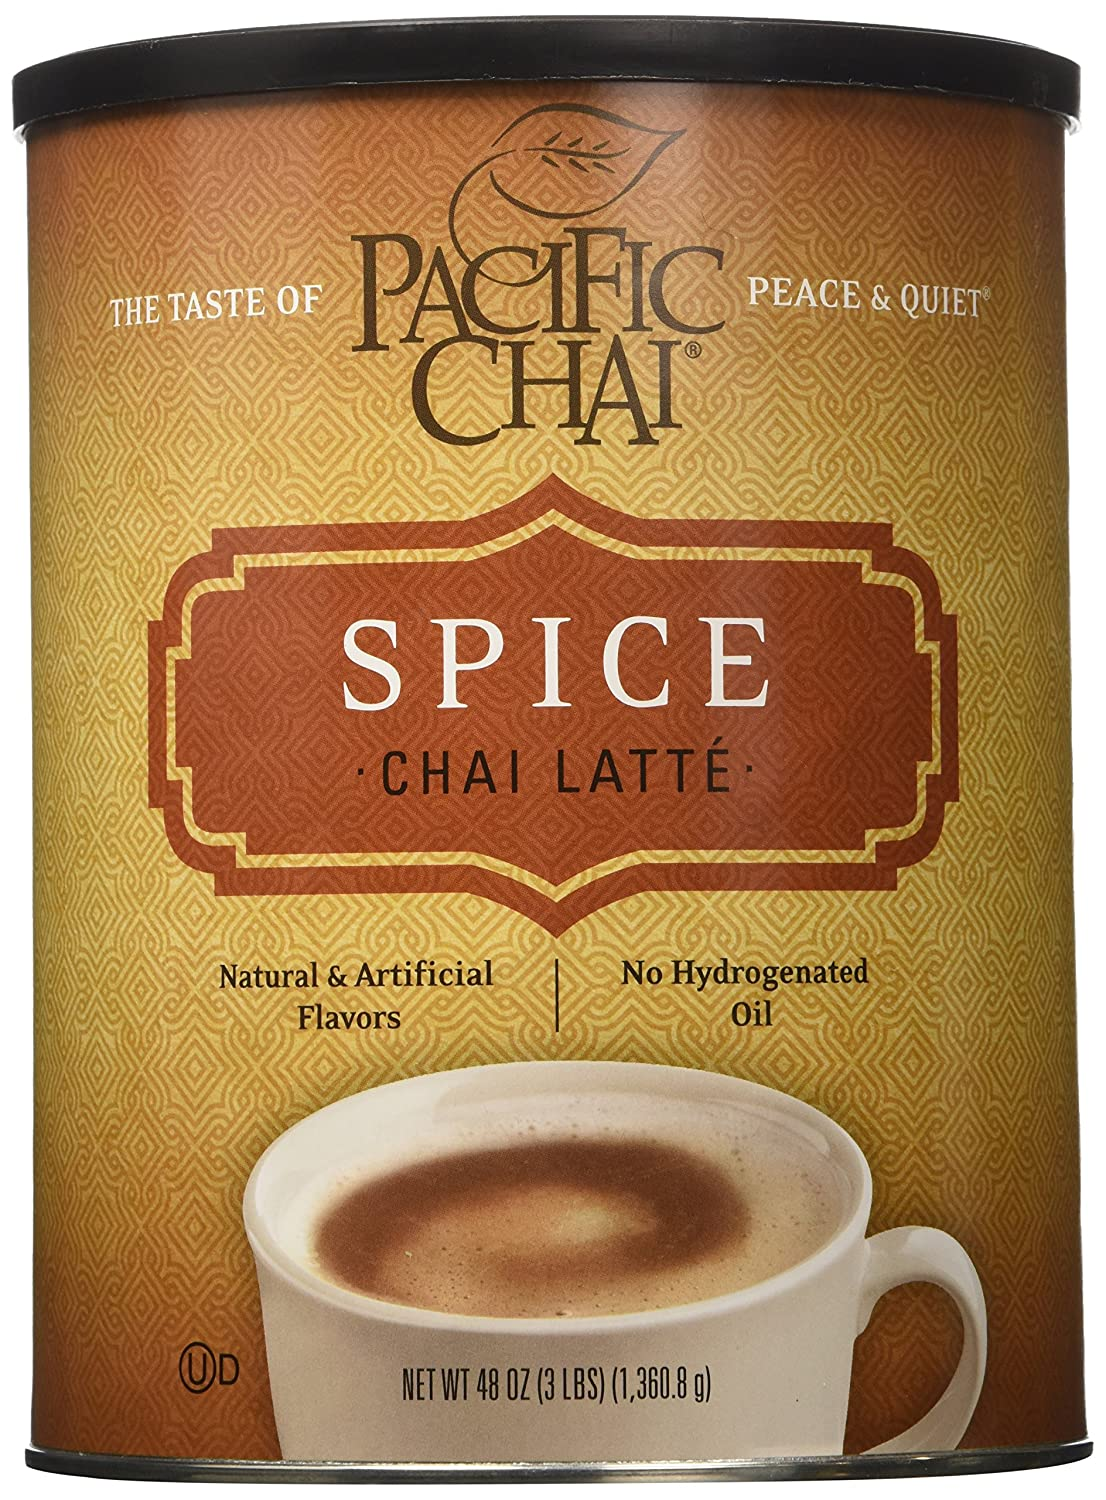 Pacific Chai Spice 3-pound Canister, Instant, Powdered Indulgent Foods SYNCHKG025811